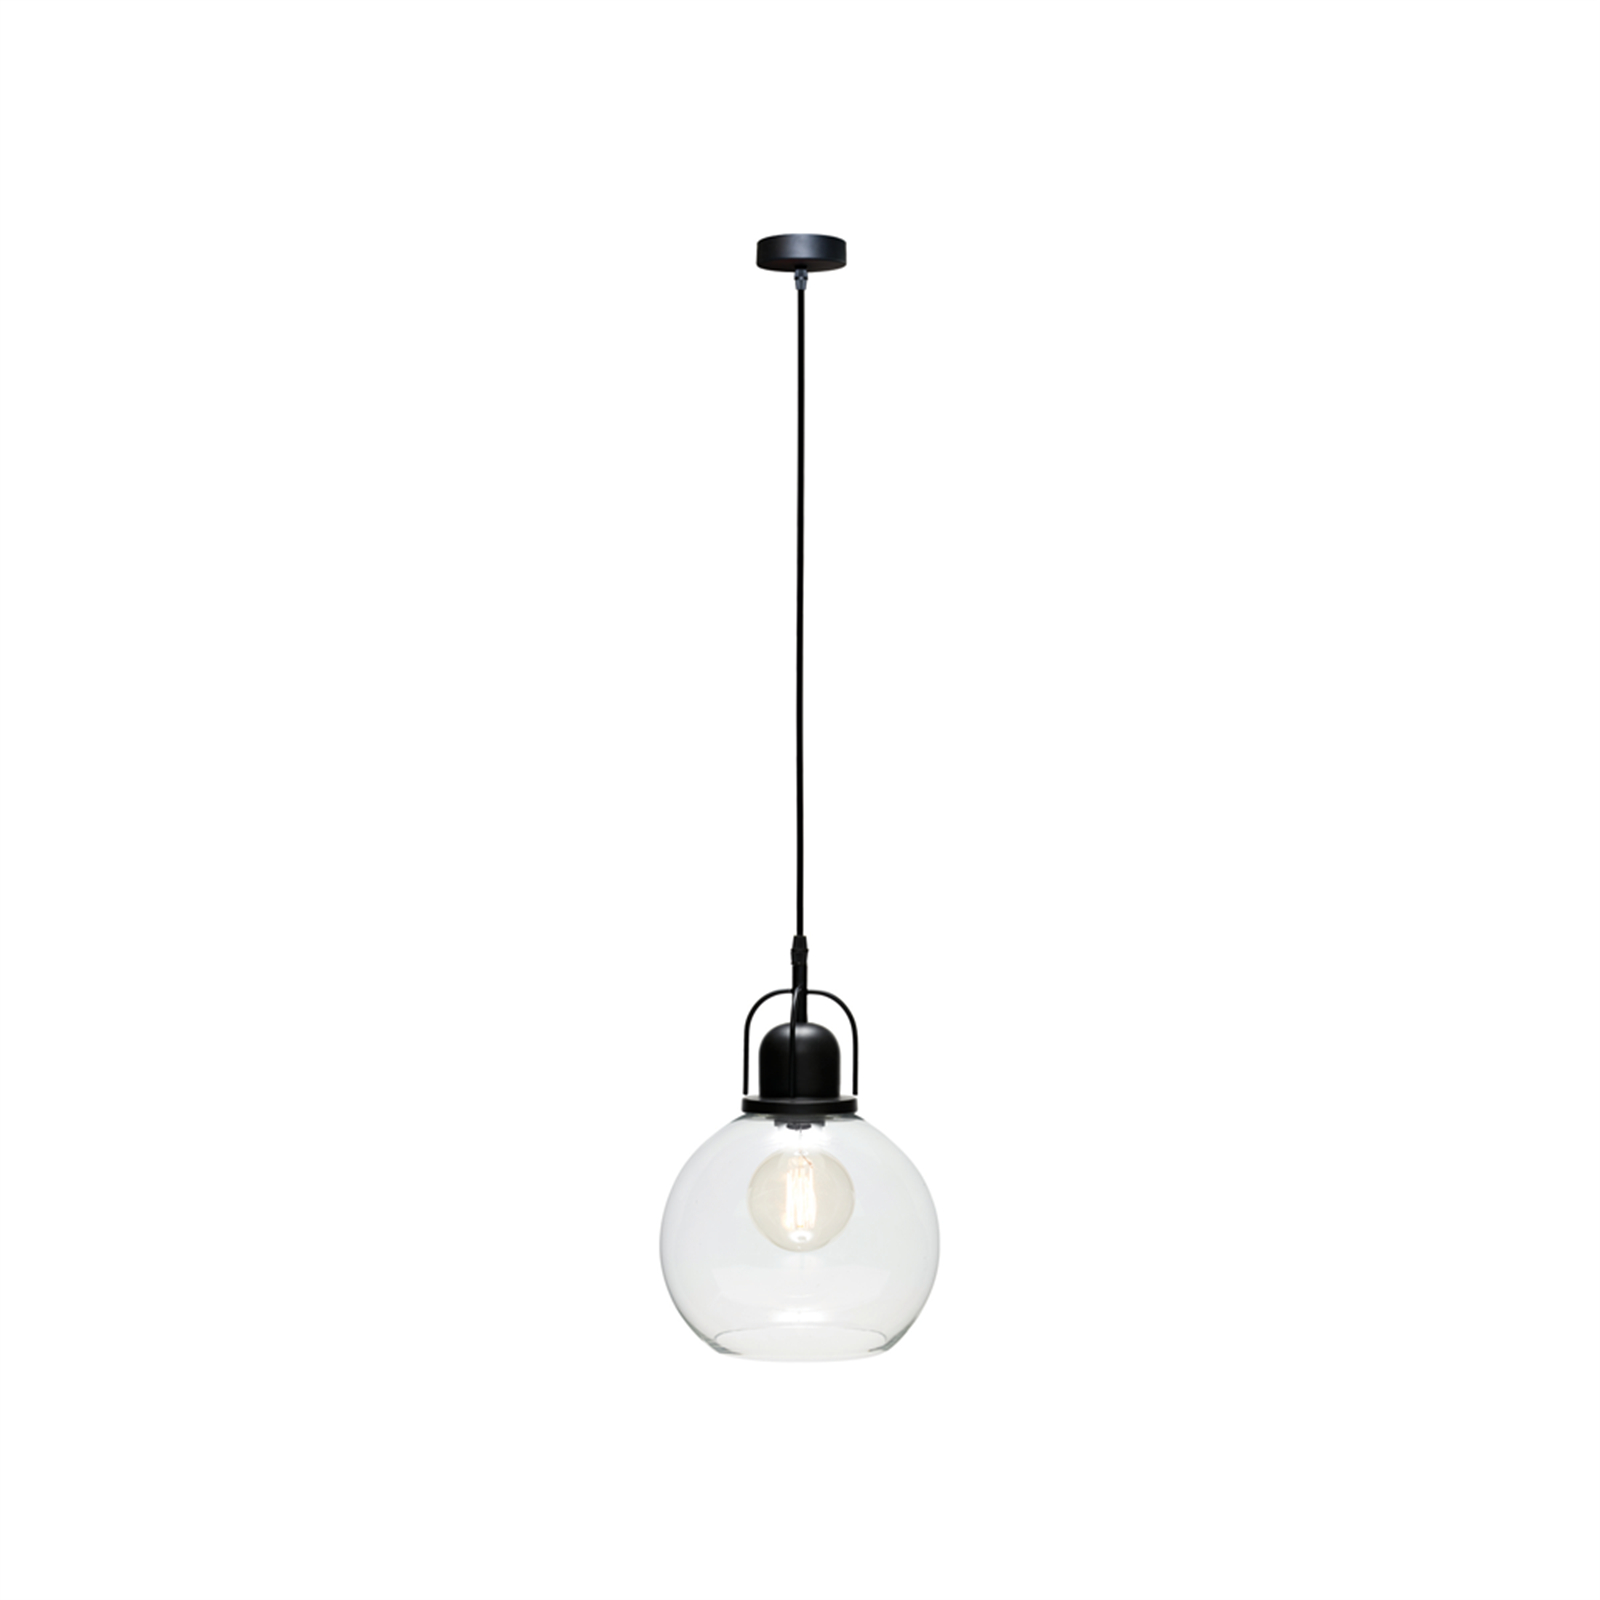 Home Design 25cm 240v Forma Single Pendant Light | Pendant Throughout Bundaberg 1 Light Single Bell Pendants (View 22 of 30)